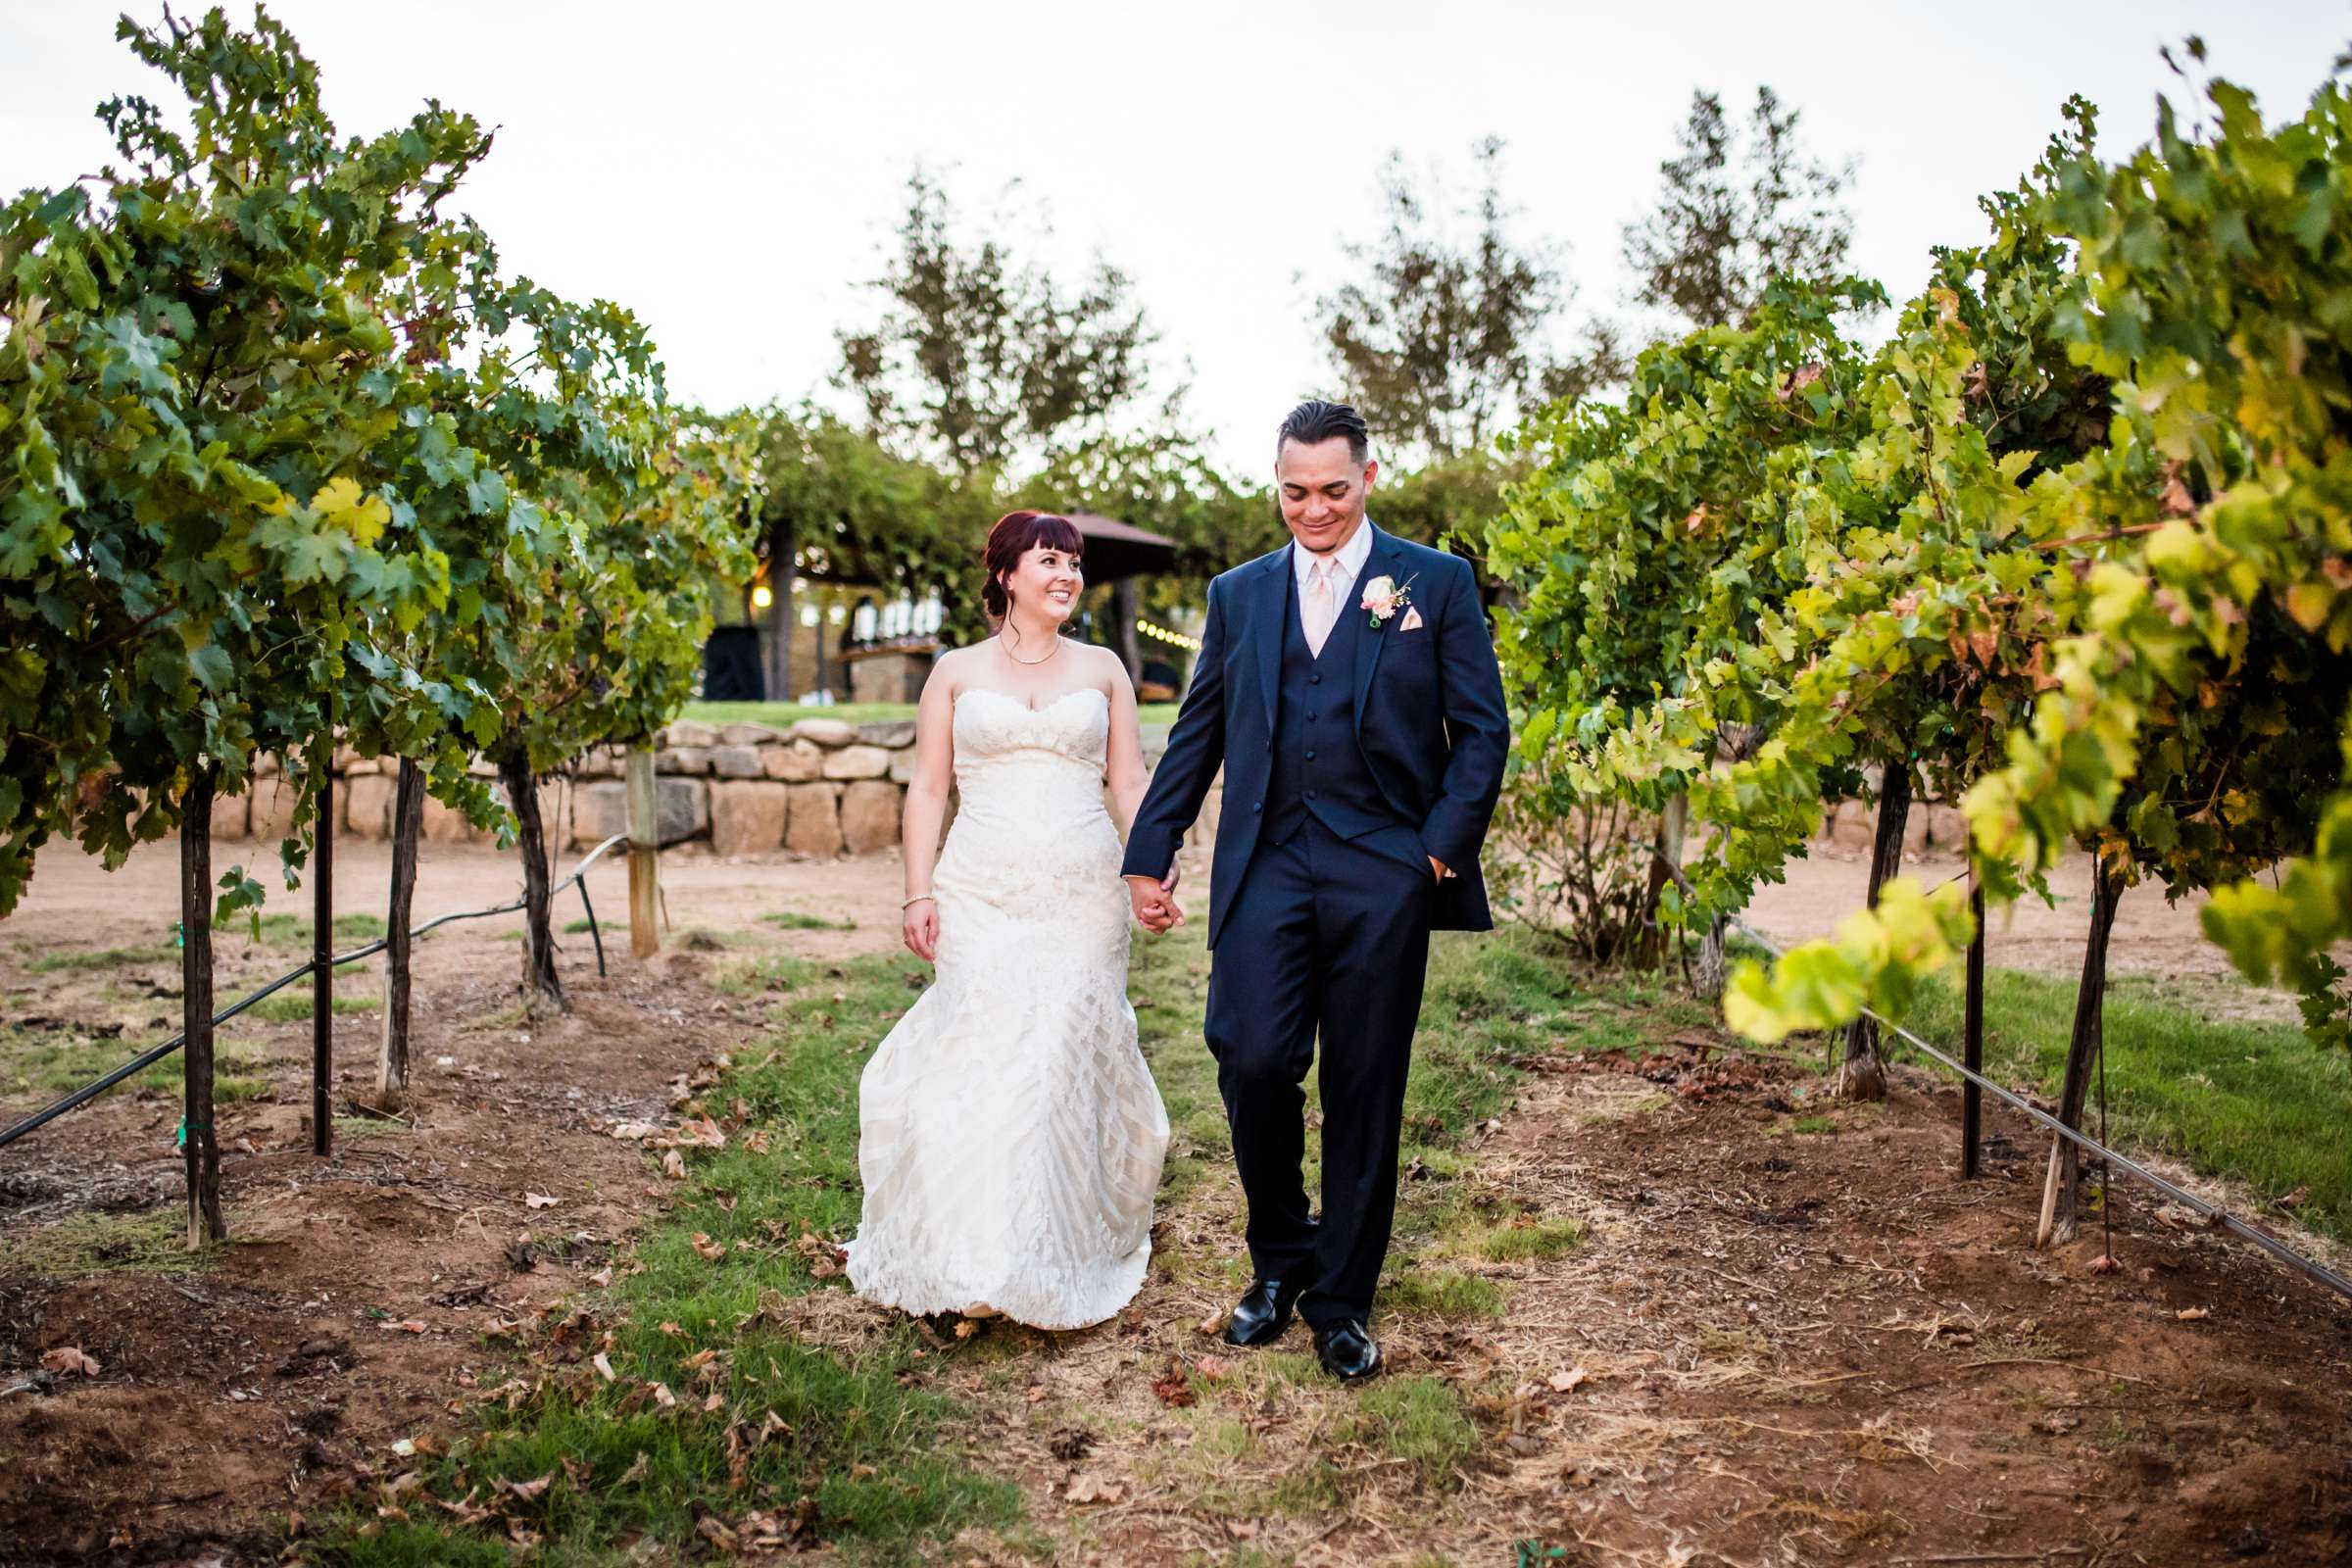 Orfila Vineyards Wedding, Tulasi and Richard Wedding Photo #47 by True Photography